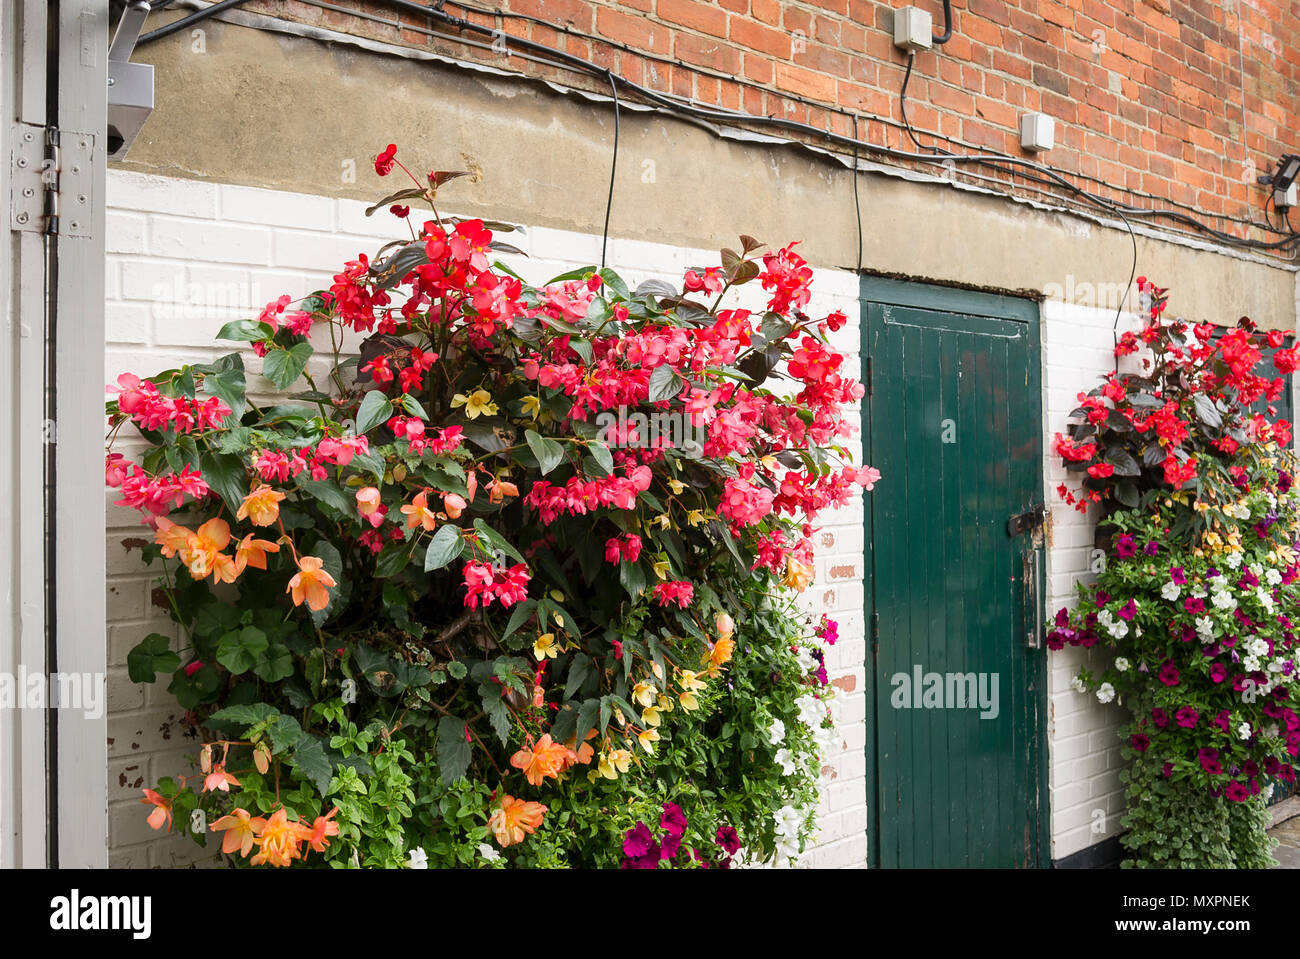 A fairly mundane area in rear of a commercial property enlivened by hanging floral containers on flanking walls - Stock Image